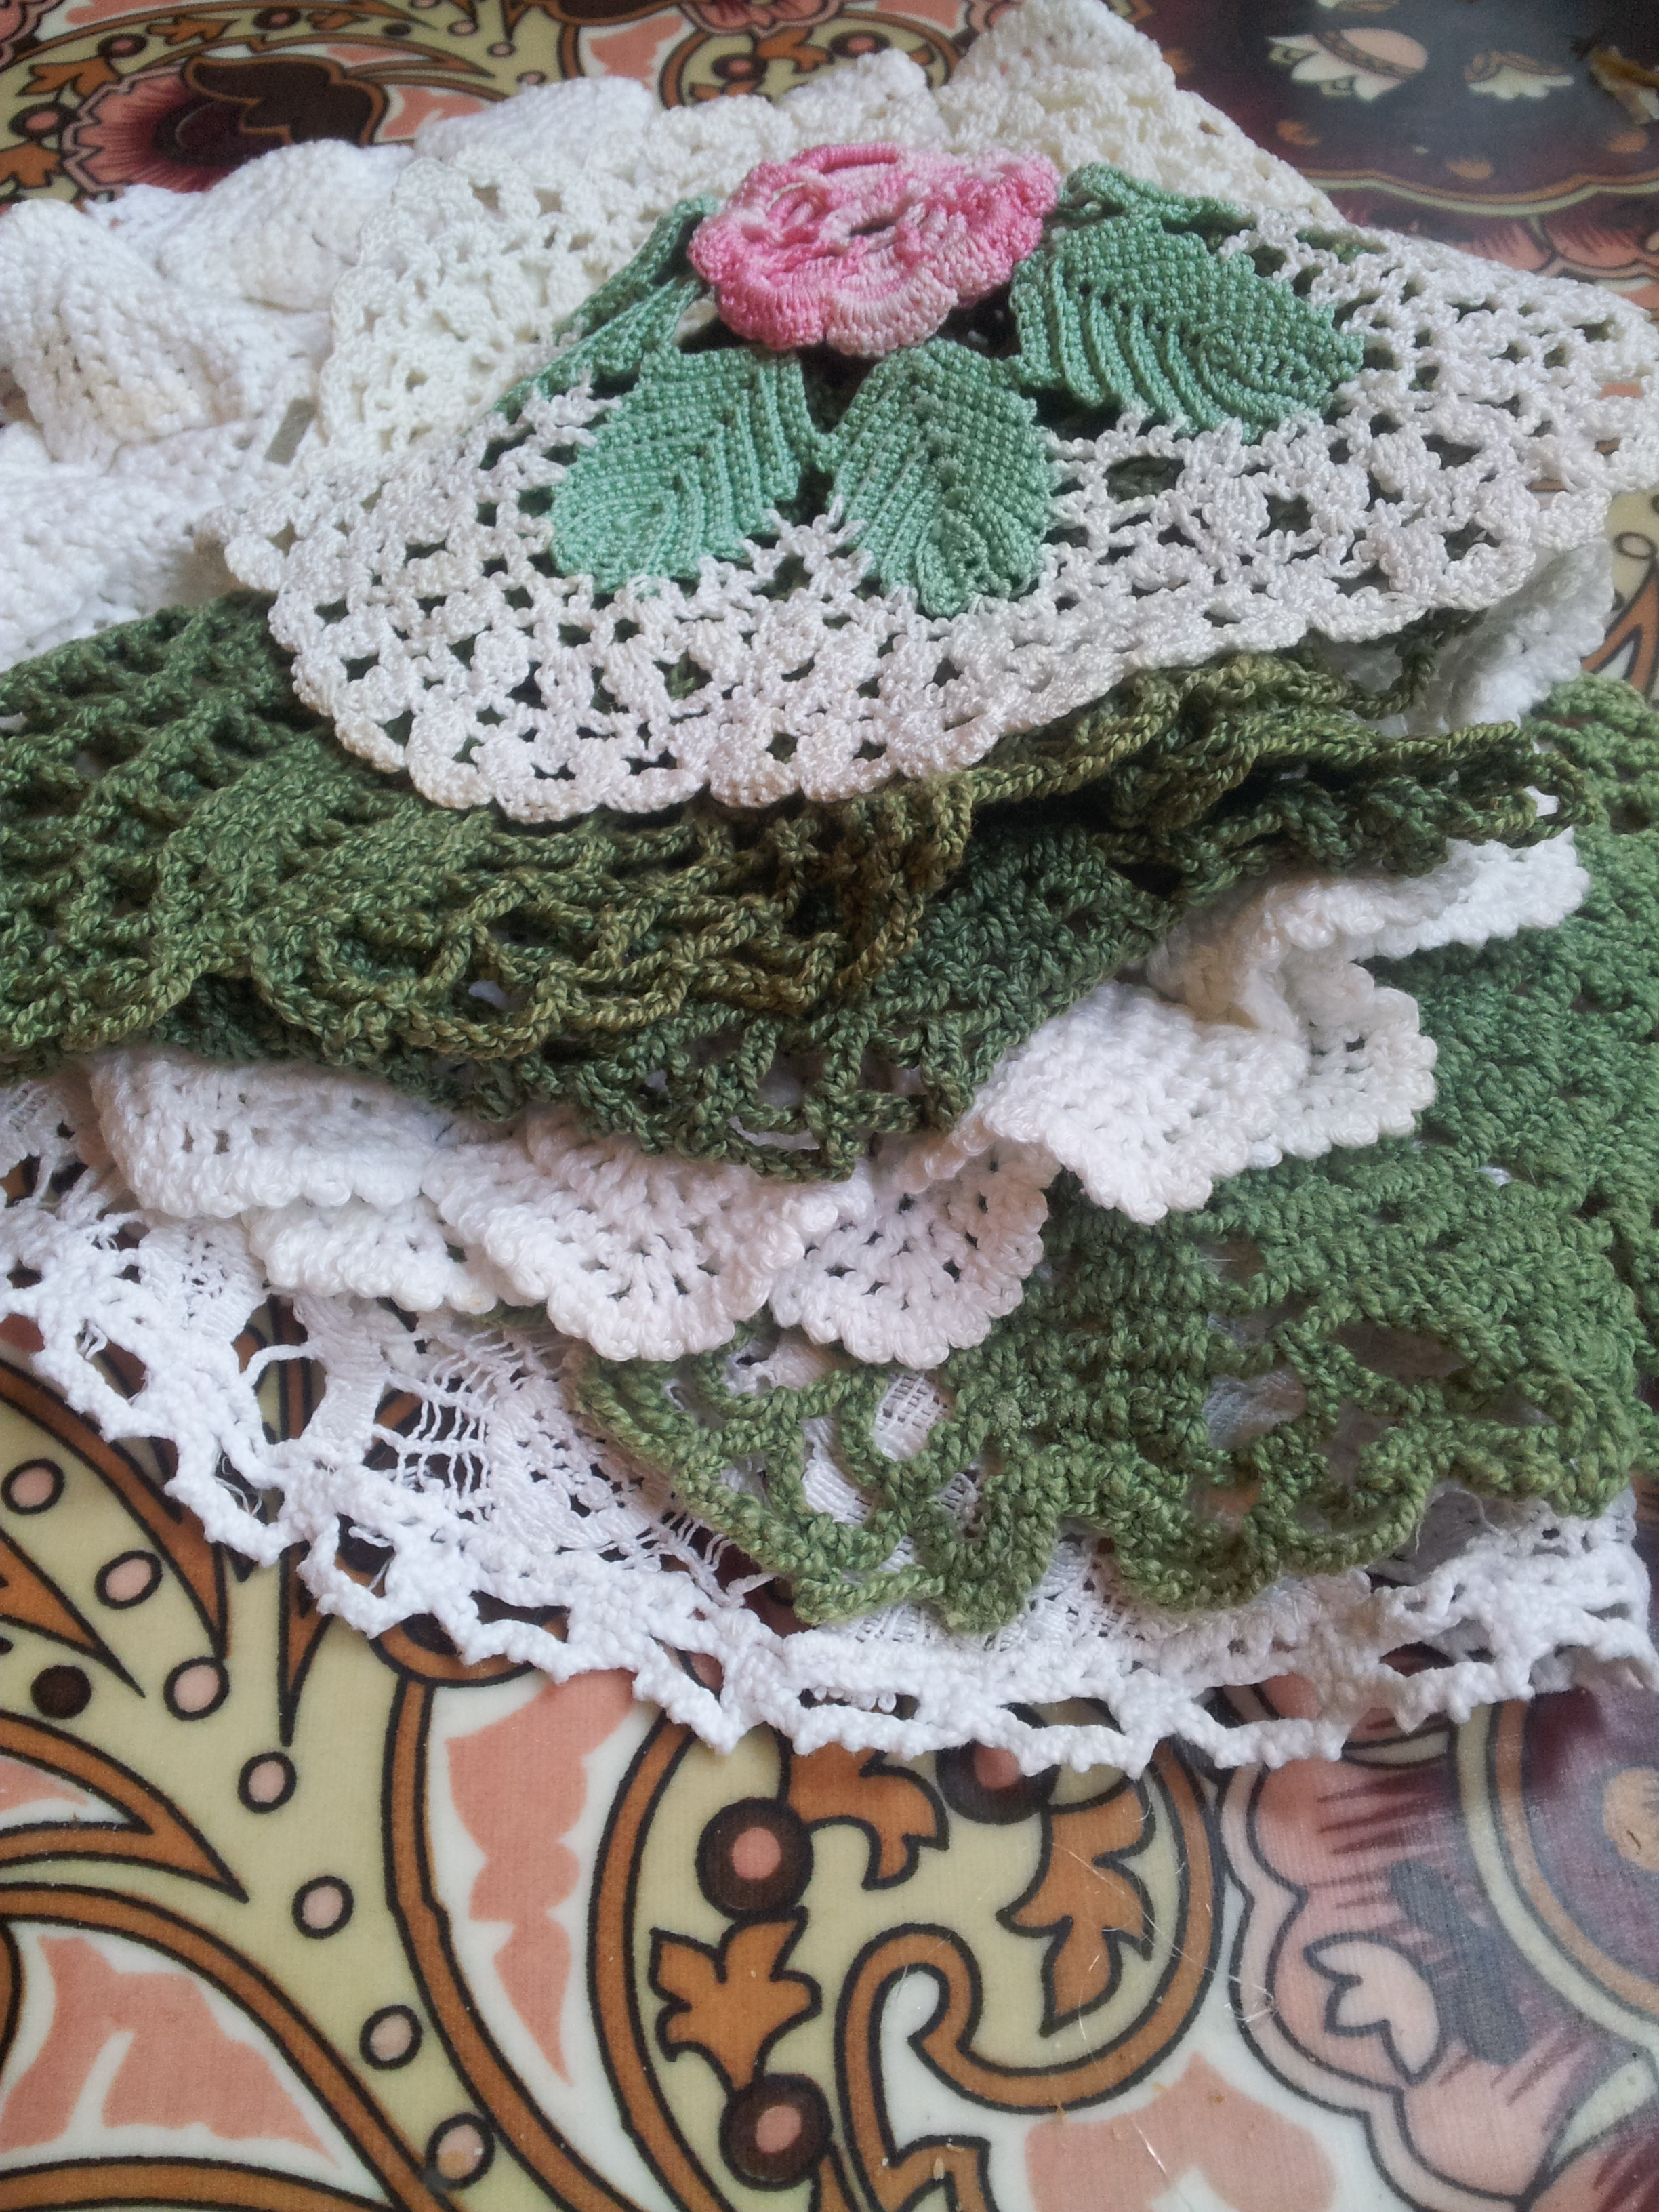 Stack doilies